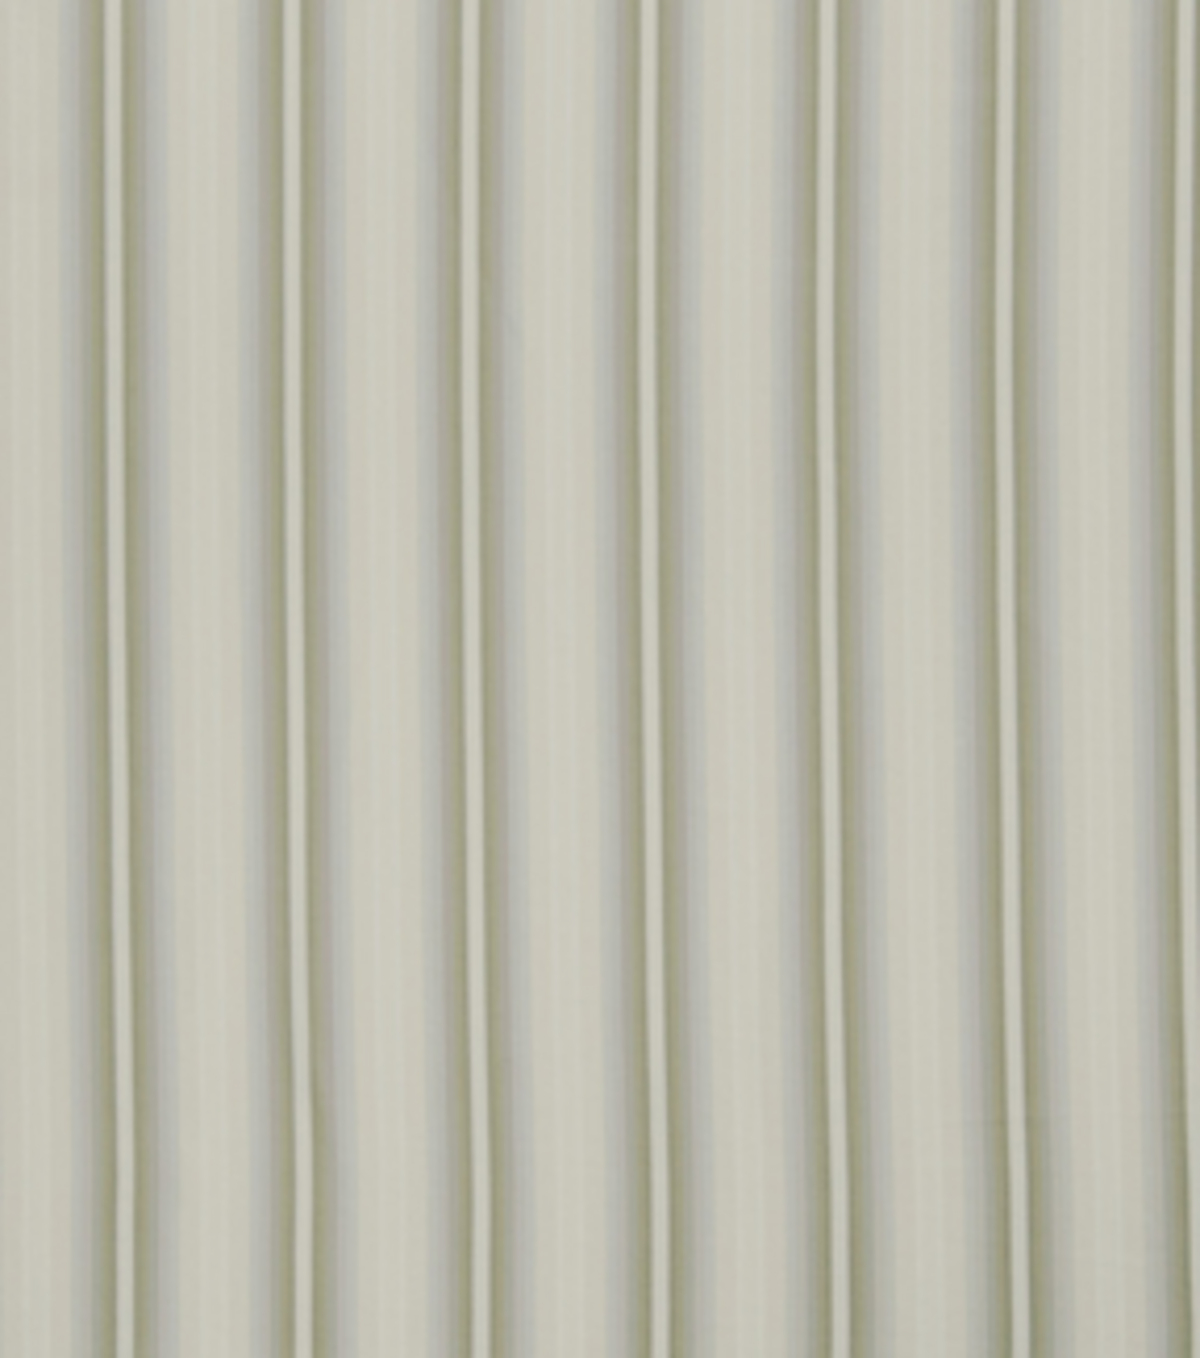 Home Decor 8\u0022x8\u0022 Fabric Swatch-French General  Gidget Bisque